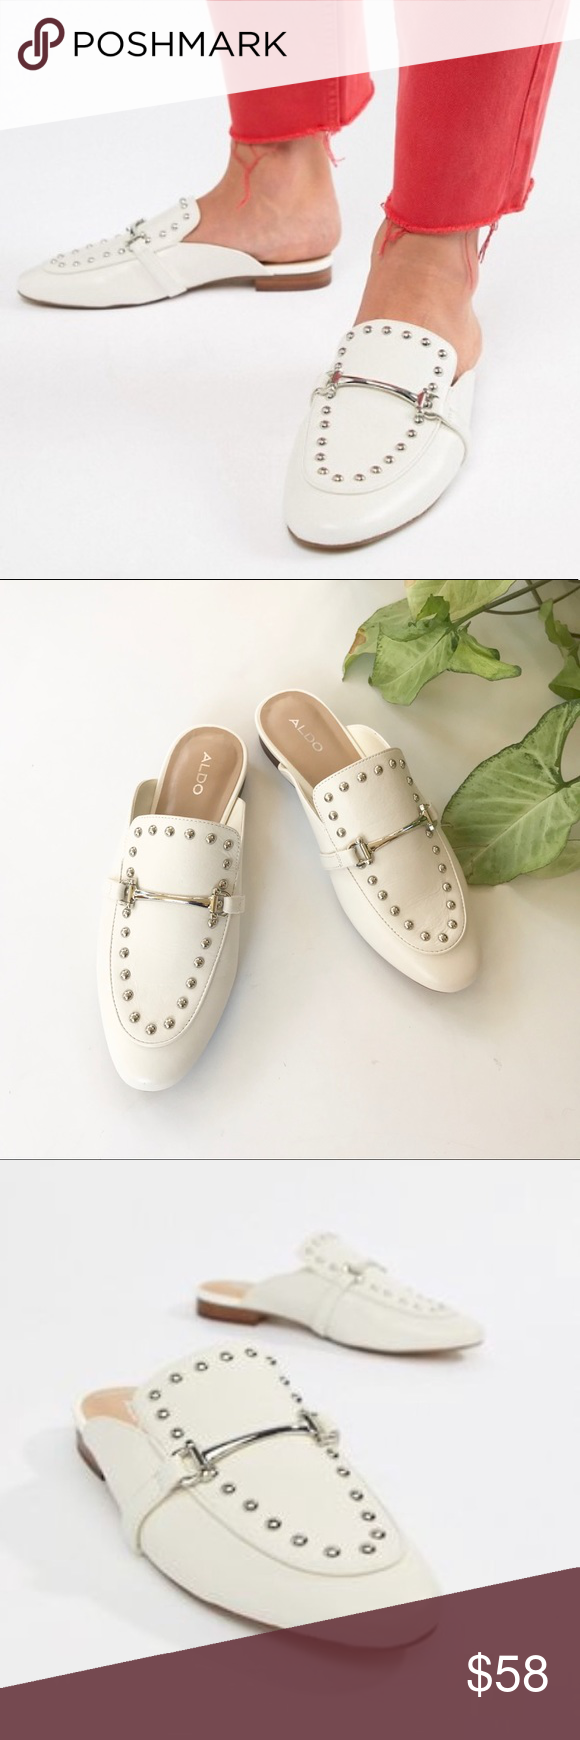 9bb0f46eda NWT Aldo White Studded Metal Bar Loafer Mules 7.5 ALDO Classic all upper  leather loafers with